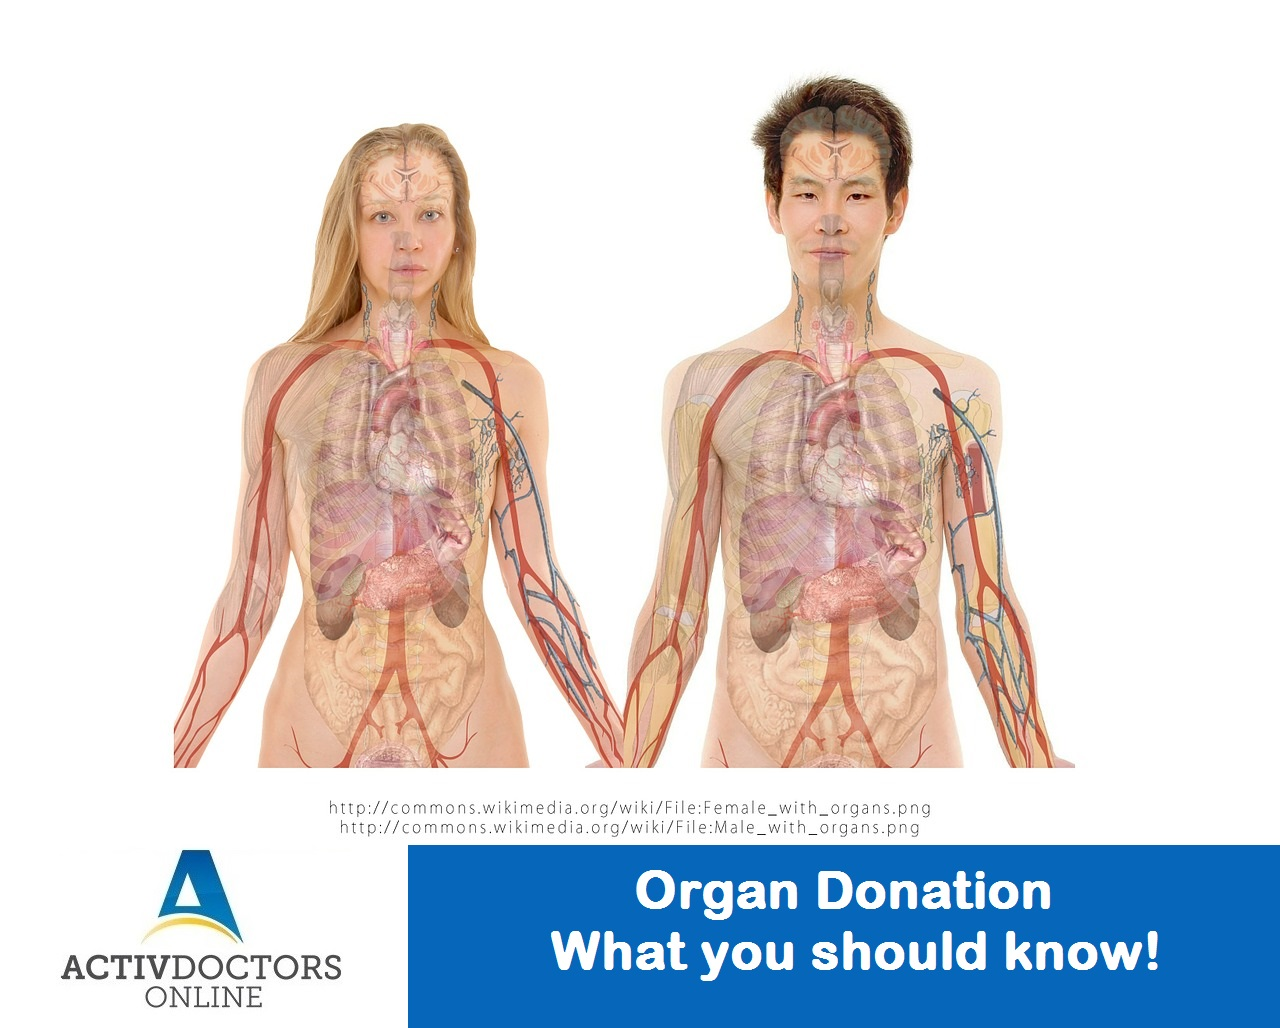 Organ Donation – What you should know!